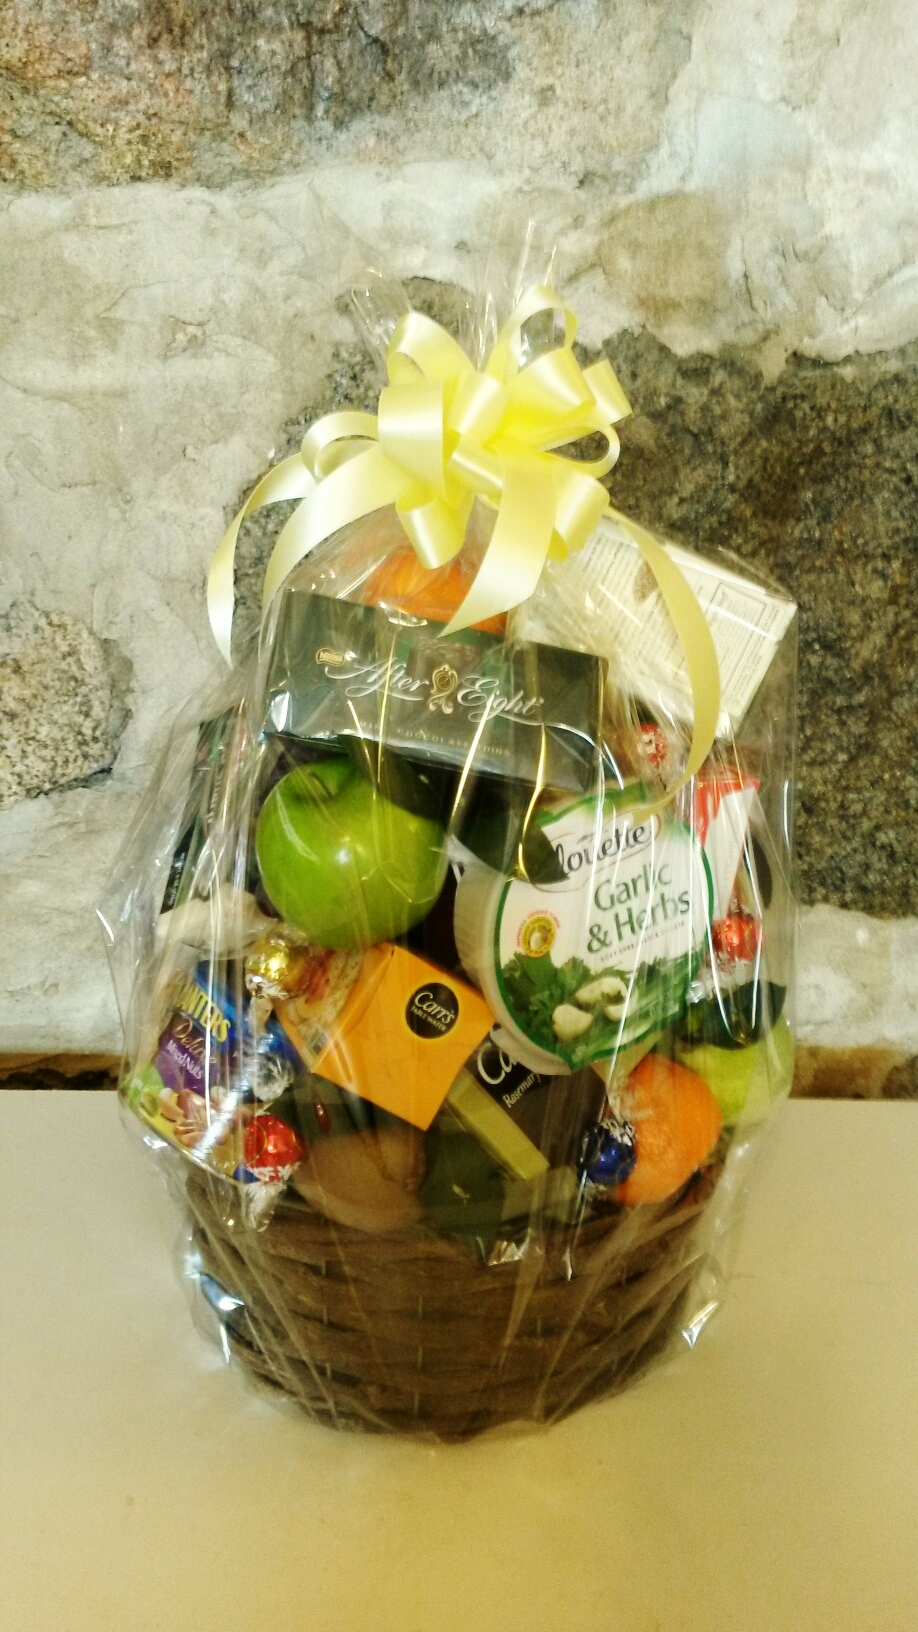 C4 $100-$175 gourmet basket with fruit,cheese,nuts,crackers,sweets. $100 as shown.